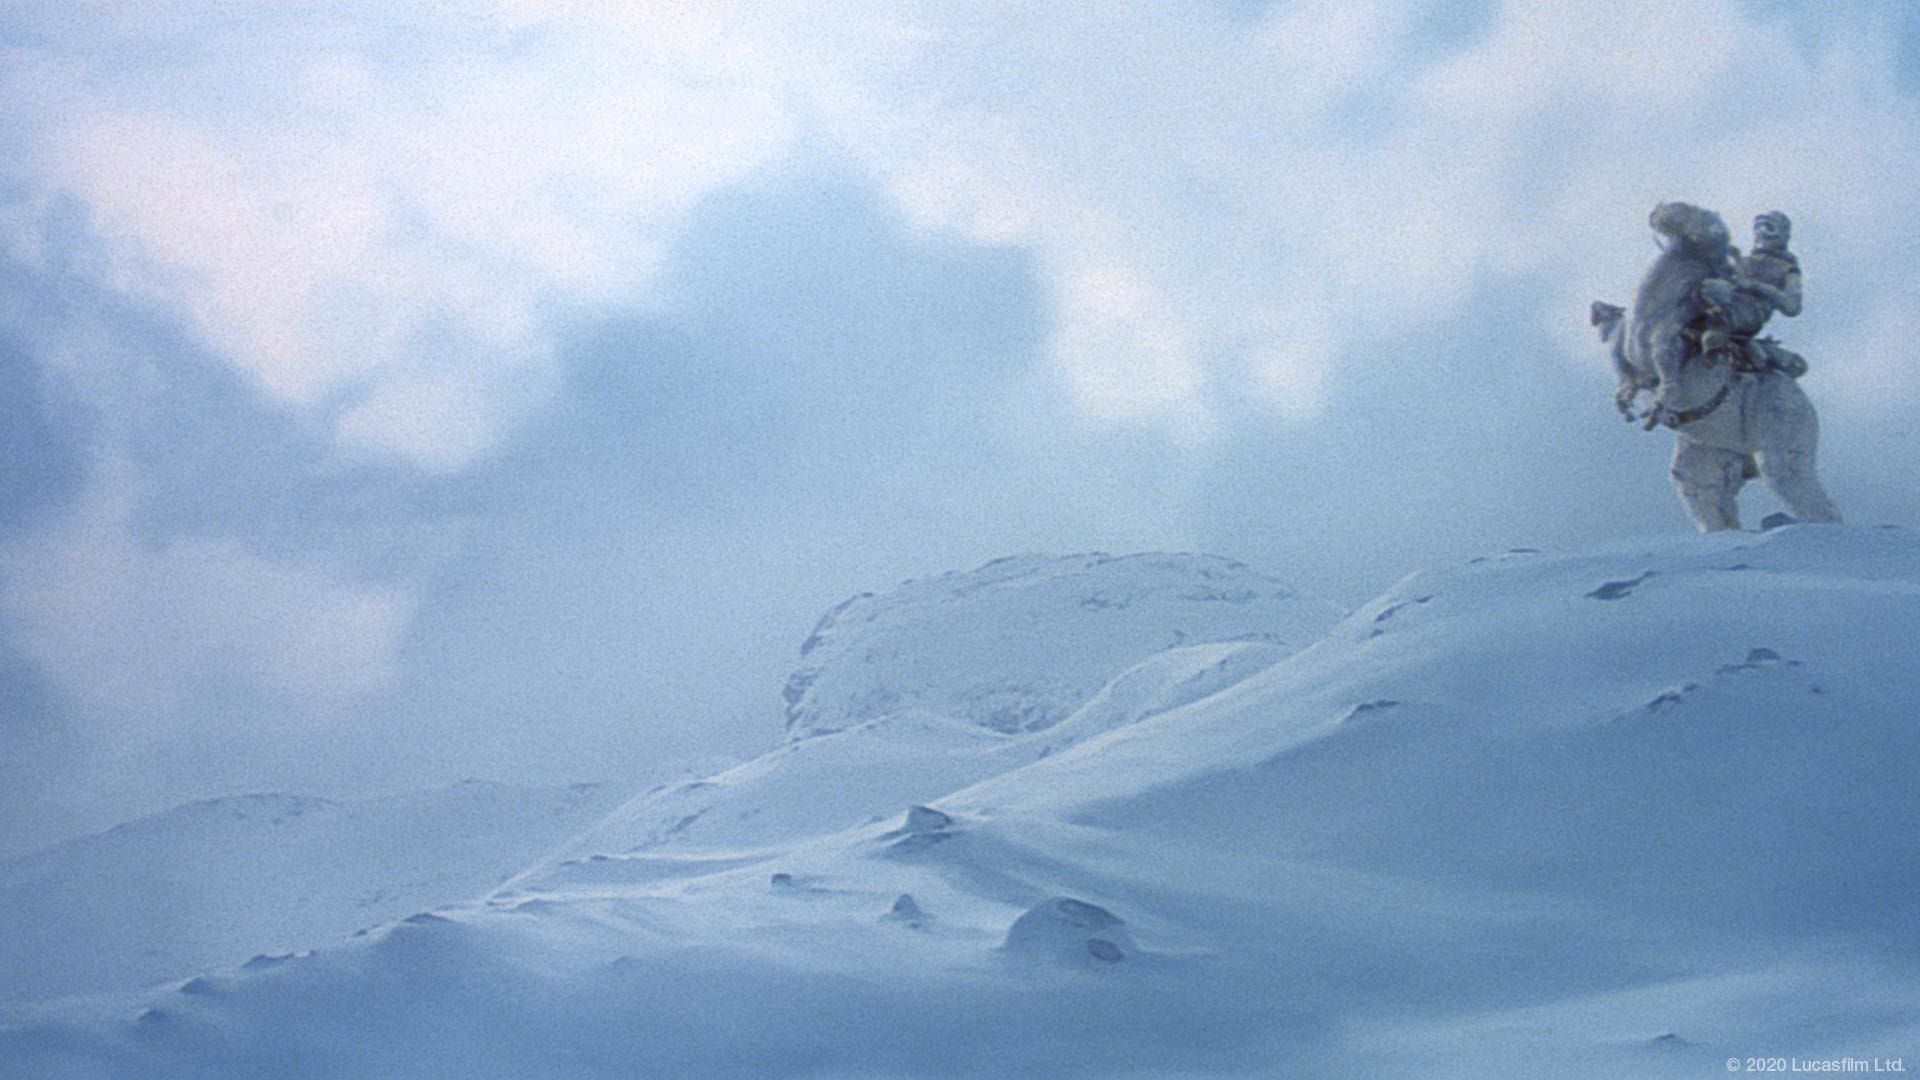 Hoth Video Background